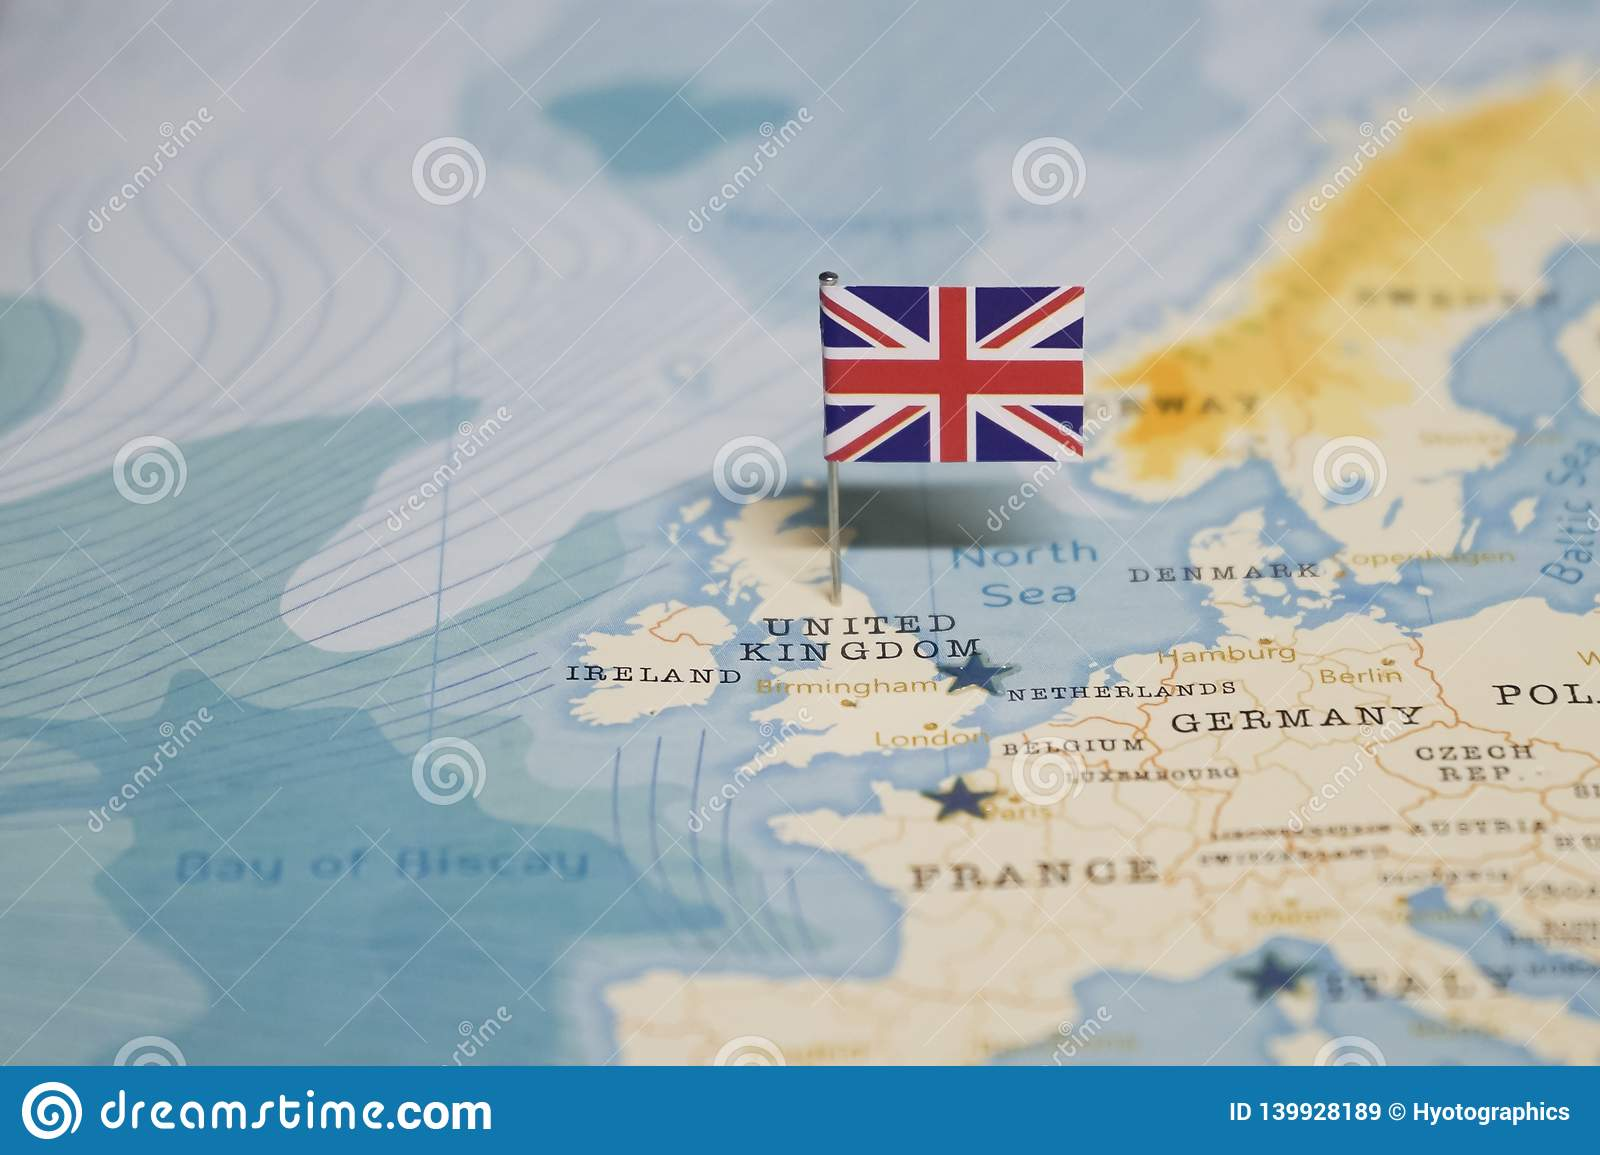 The Flag Of United Kingdom, UK In The World Map Stock Image ... United Kingdom In The World Map on israel in the world map, liberia in the world map, taiwan in the world map, croatia in the world map, jersey in the world map, costa rica in the world map, west indies in the world map, eiffel tower in the world map, india in the world map, bahrain in the world map, kiribati in the world map, abu dhabi in the world map, japan in the world map, bermuda in the world map, fiji in the world map, colombia in the world map, sudan in the world map, falkland islands in the world map, myanmar in the world map, dominican republic in the world map,